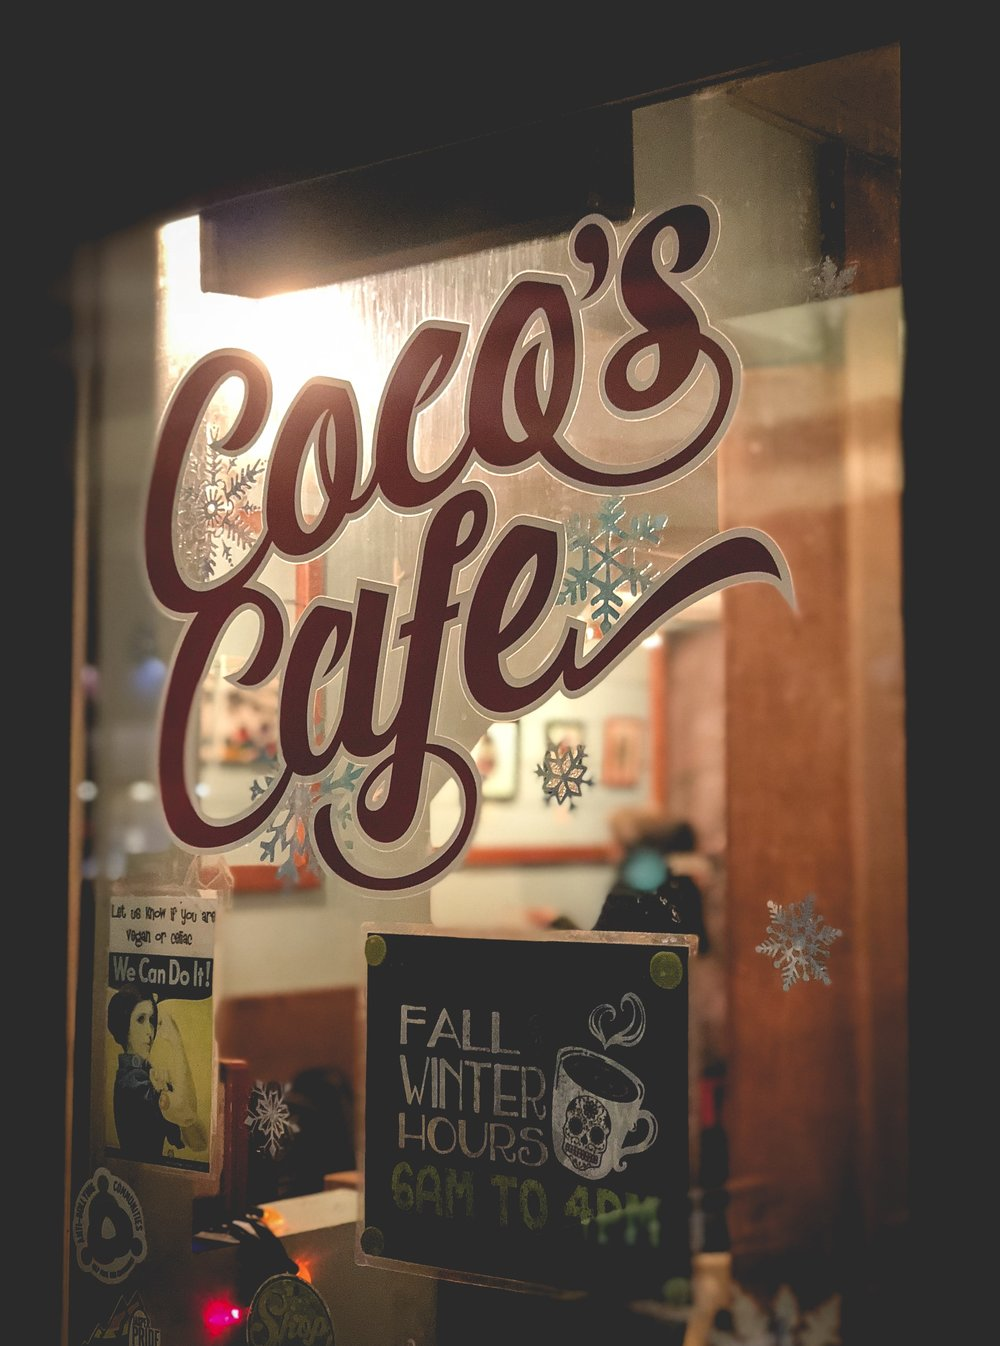 Coco's Cafe - A little spot that you'd probably walk by and totally miss out on. Our breakfast here was fantastic and we went back that same day for lunch and picked up some delicious wraps.  Definitely stop by for some eats here!